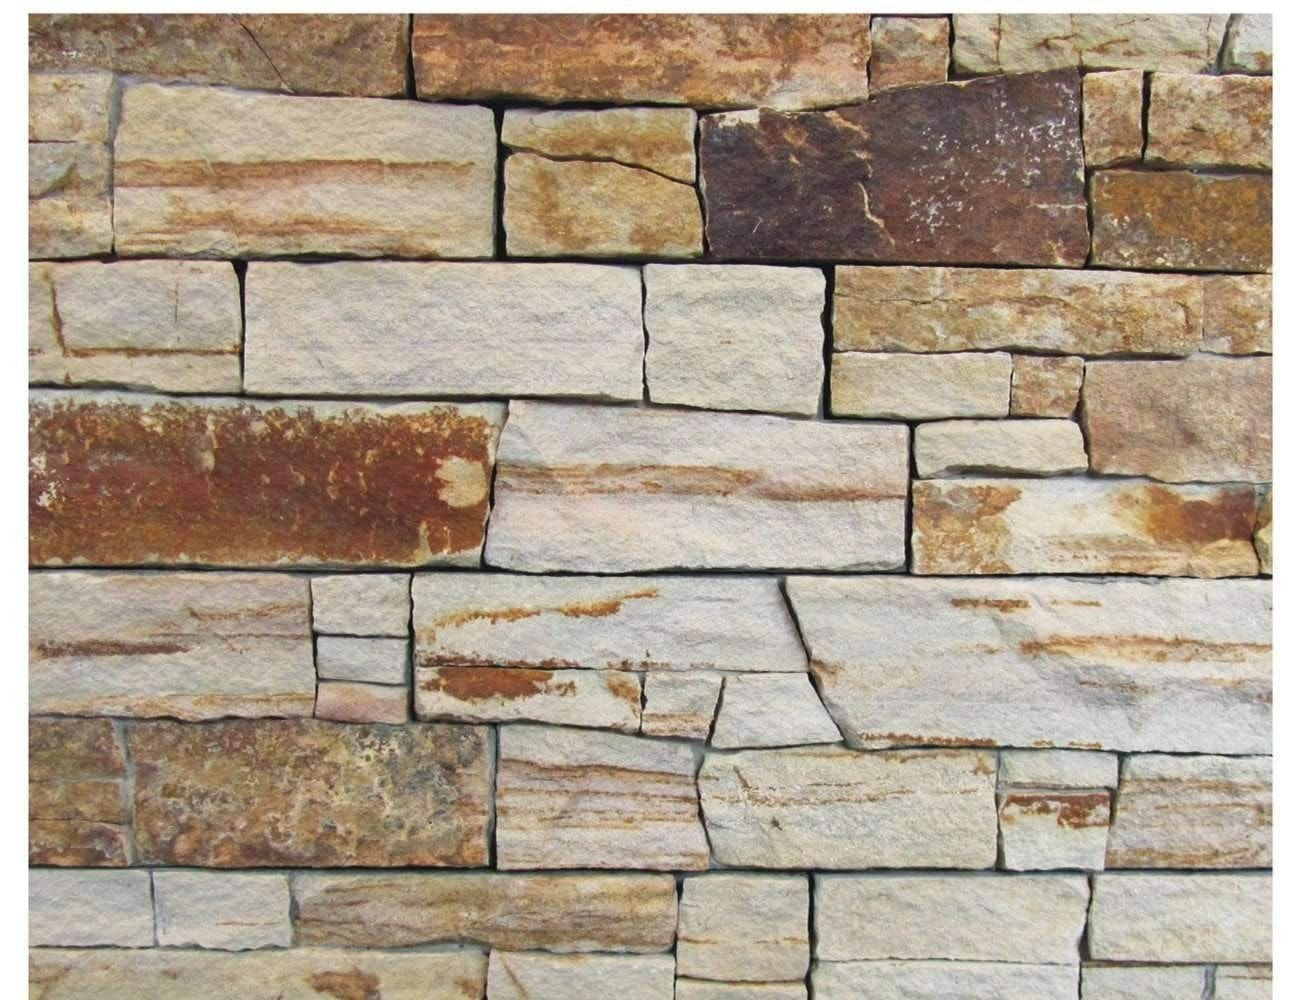 Honeycomb - Rough Cut Slate cheap stone veneer clearance - Discount Stones wholesale stone veneer, cheap brick veneer, cultured stone for sale